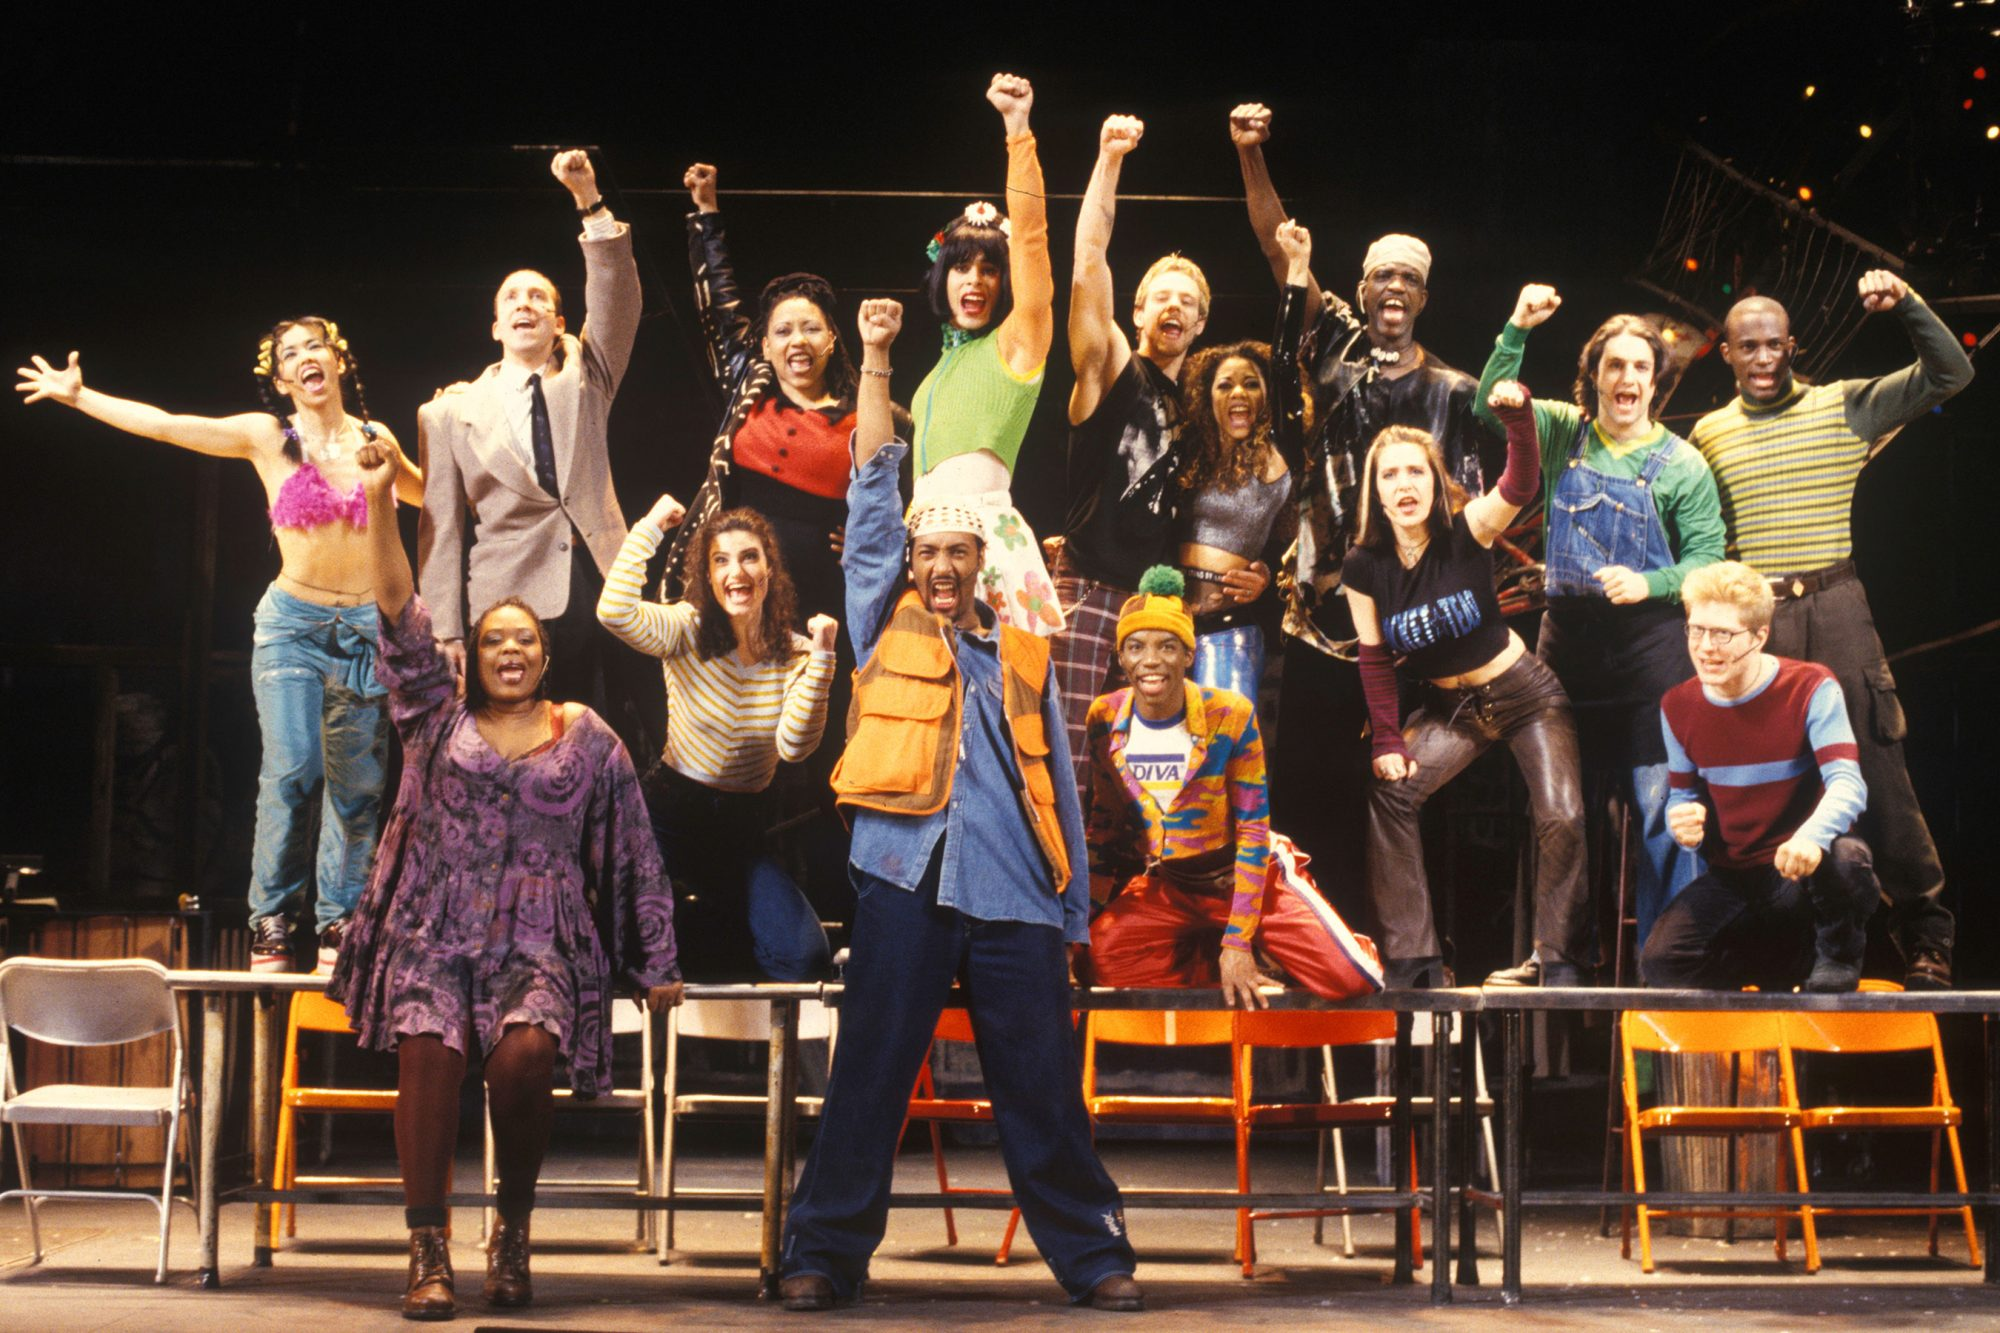 Rent(original cast, on broadway)